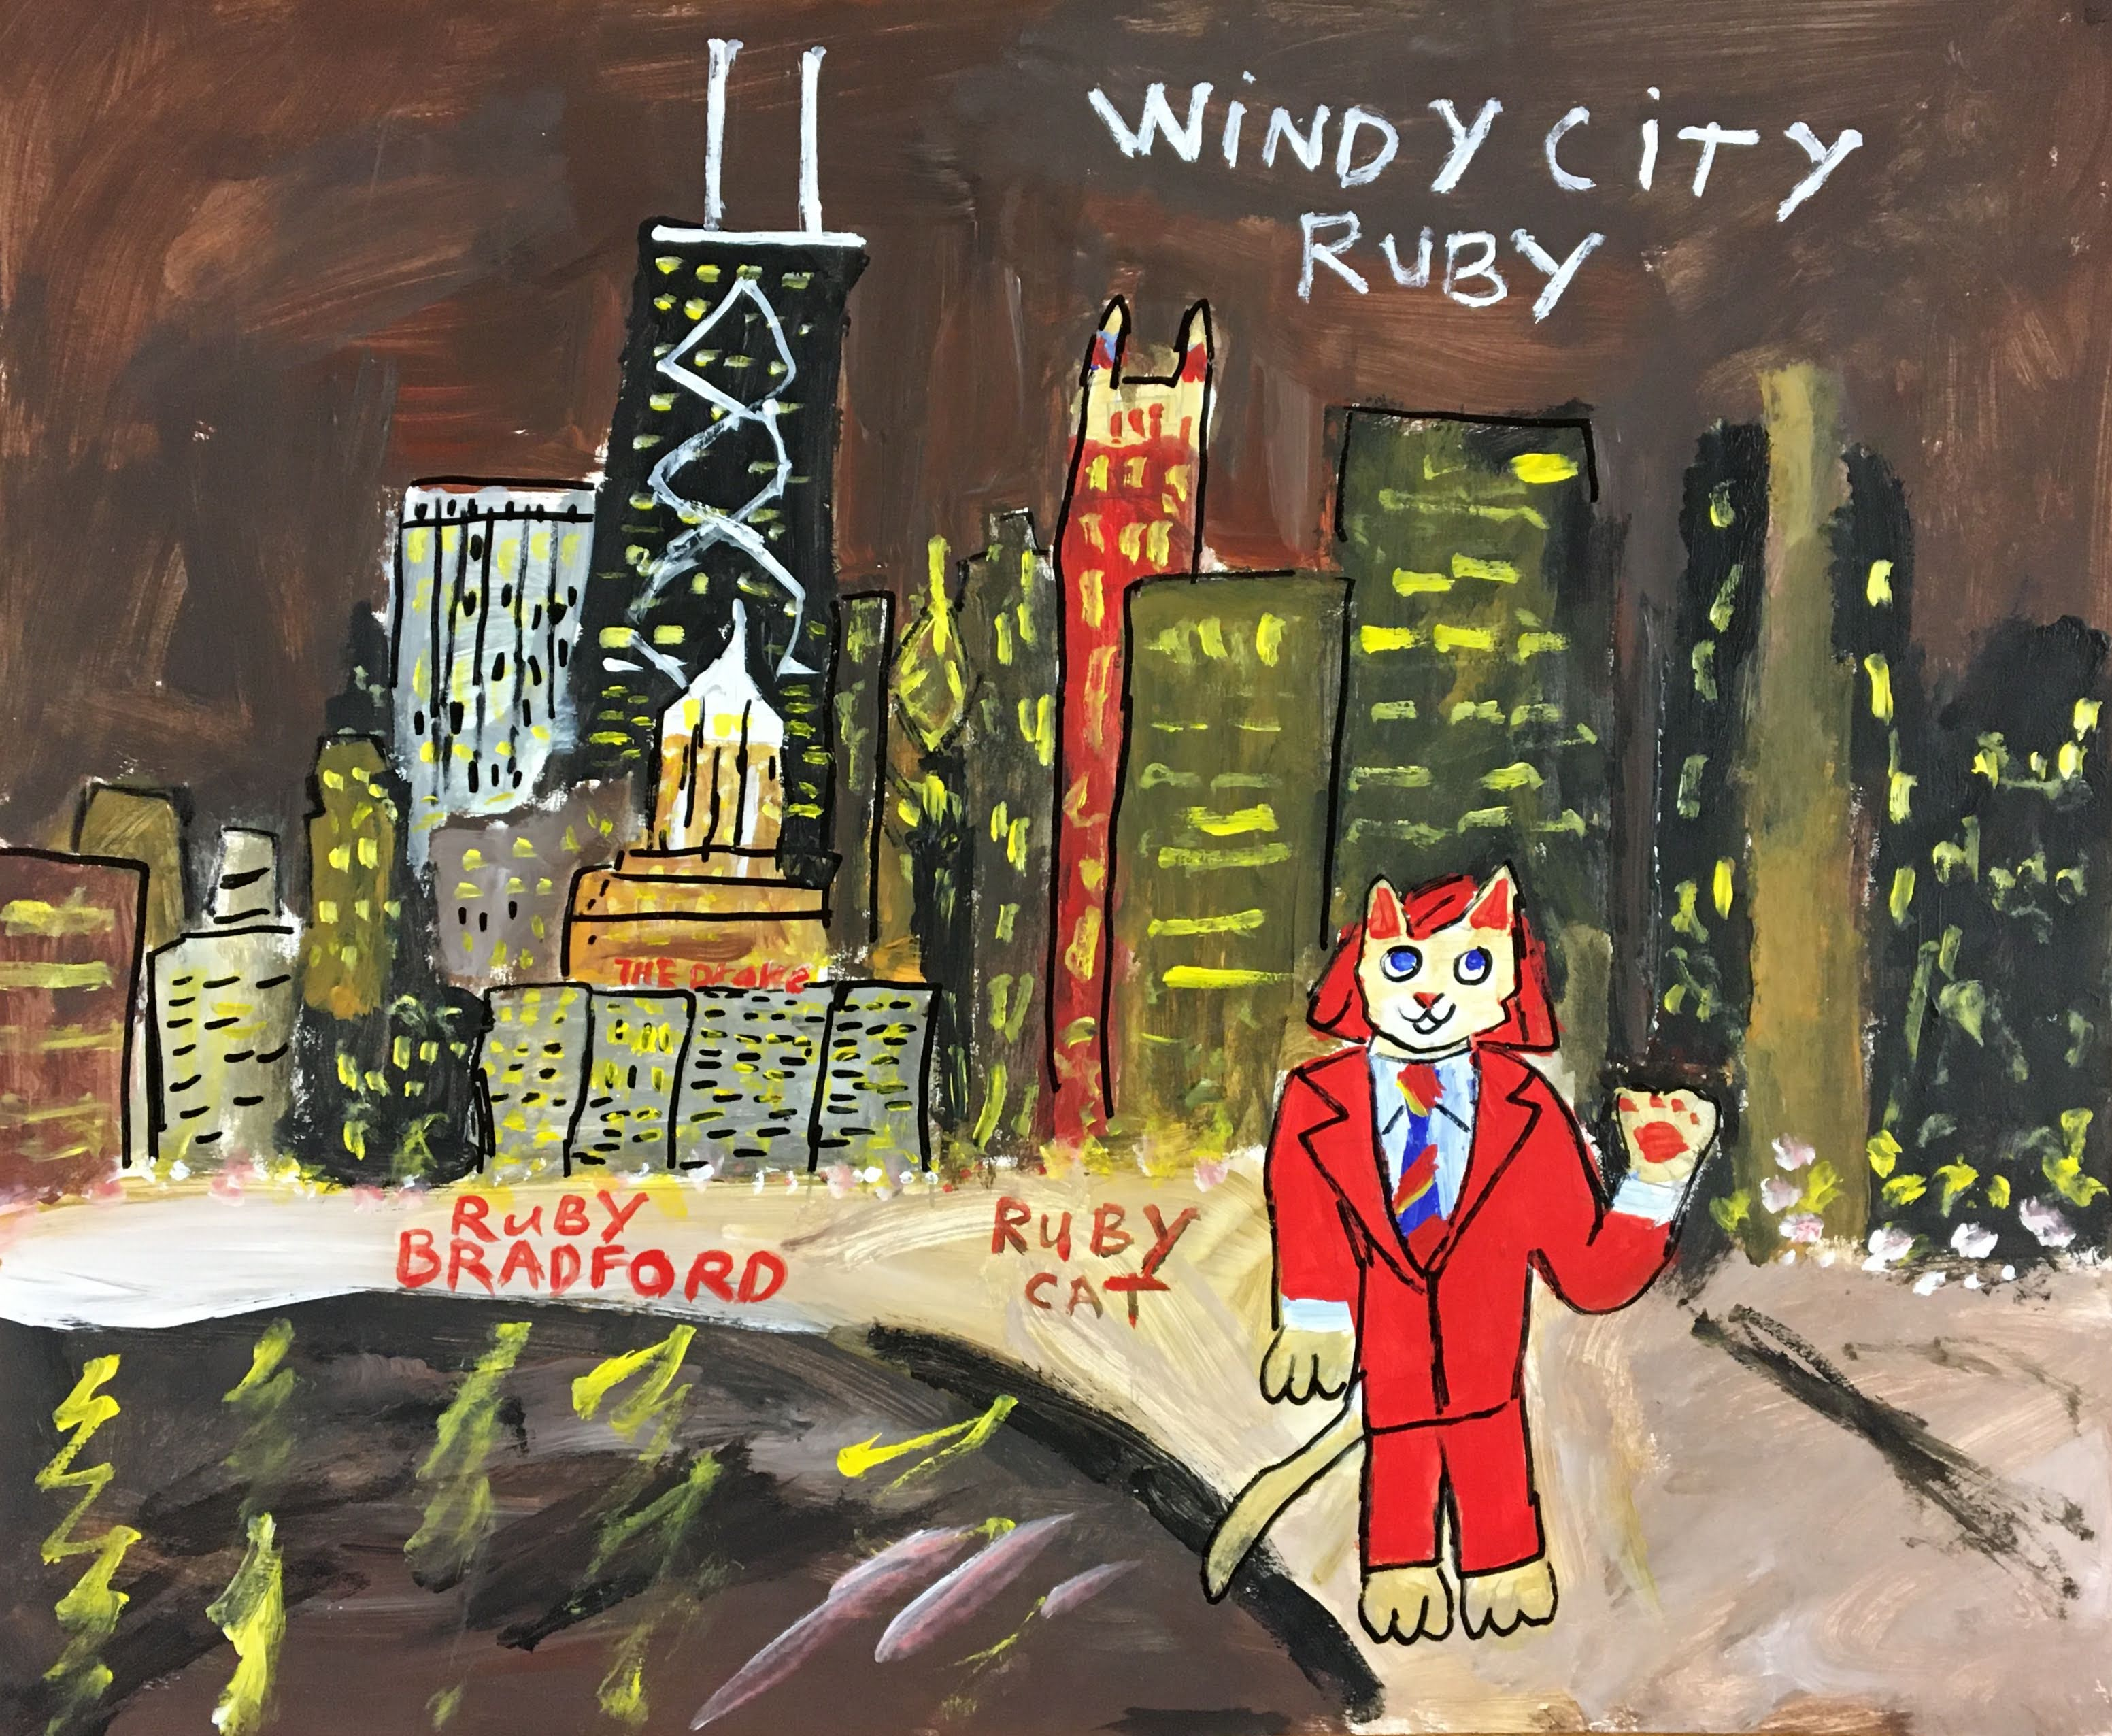 """Windy City Ruby Cat"" by Ruby Bradford"